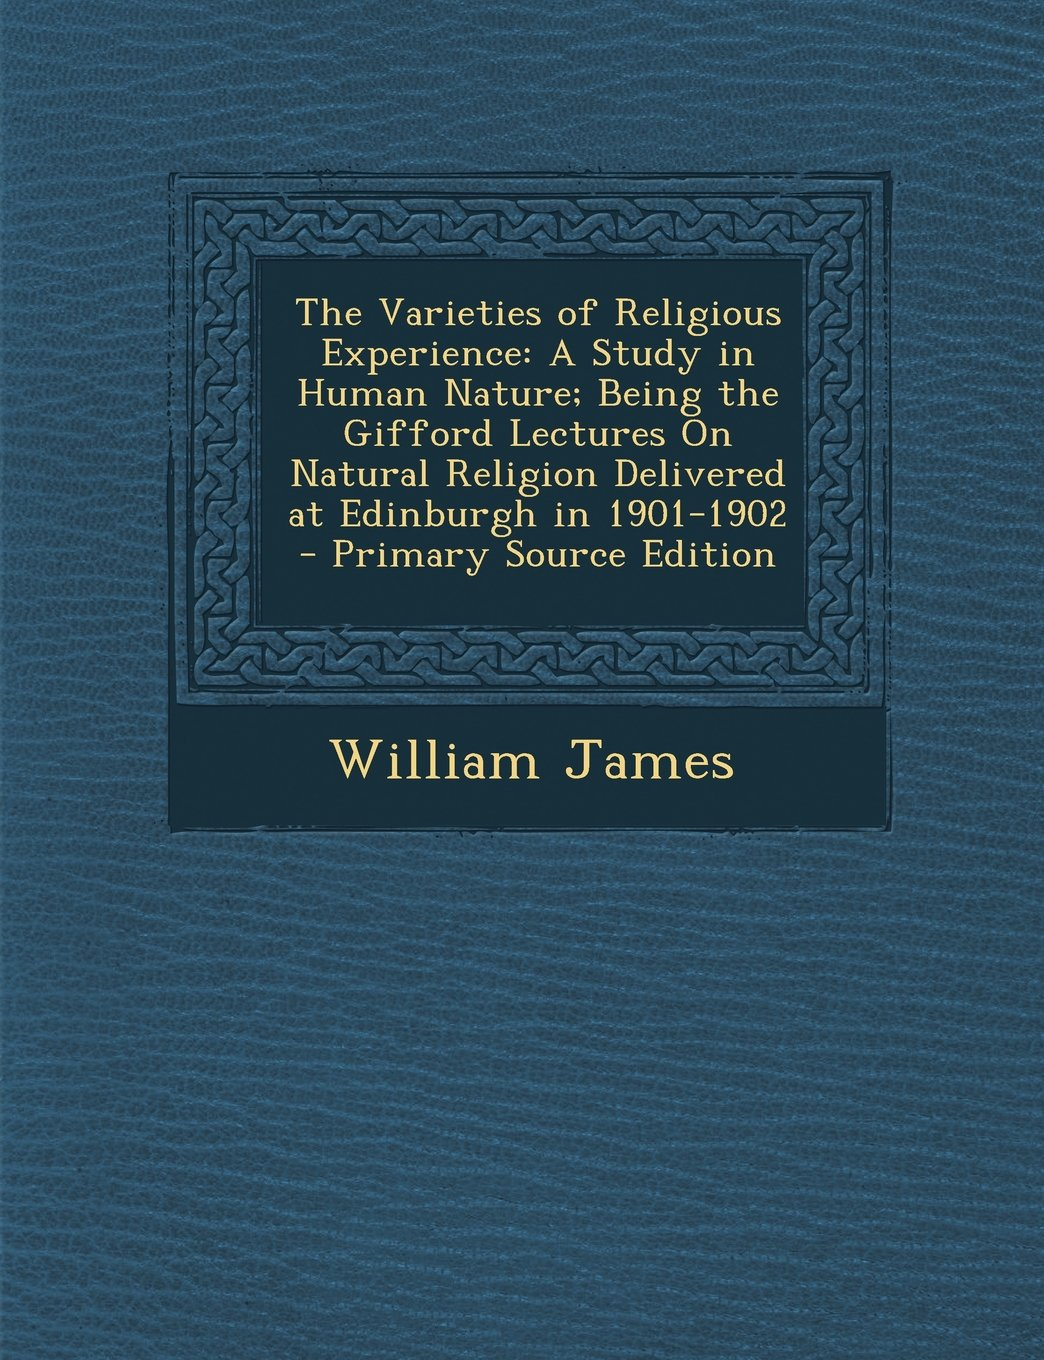 Read Online The Varieties of Religious Experience: A Study in Human Nature; Being the Gifford Lectures On Natural Religion Delivered at Edinburgh in 1901-1902 - Primary Source Edition PDF